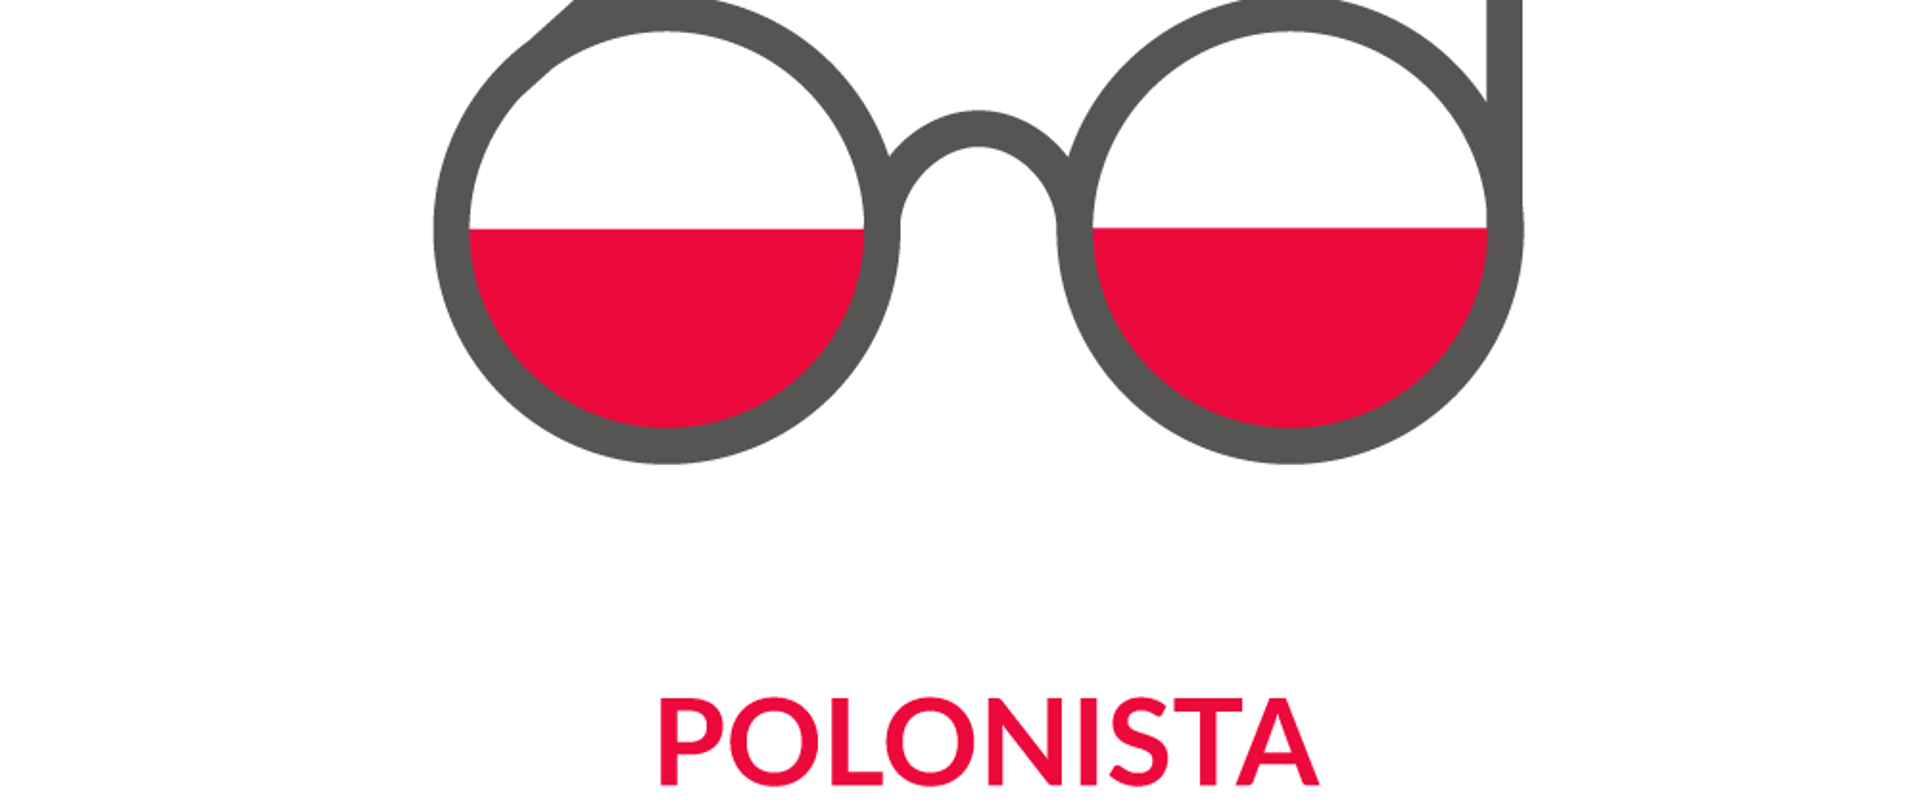 Polonista Scholarship and Fellowship Programme